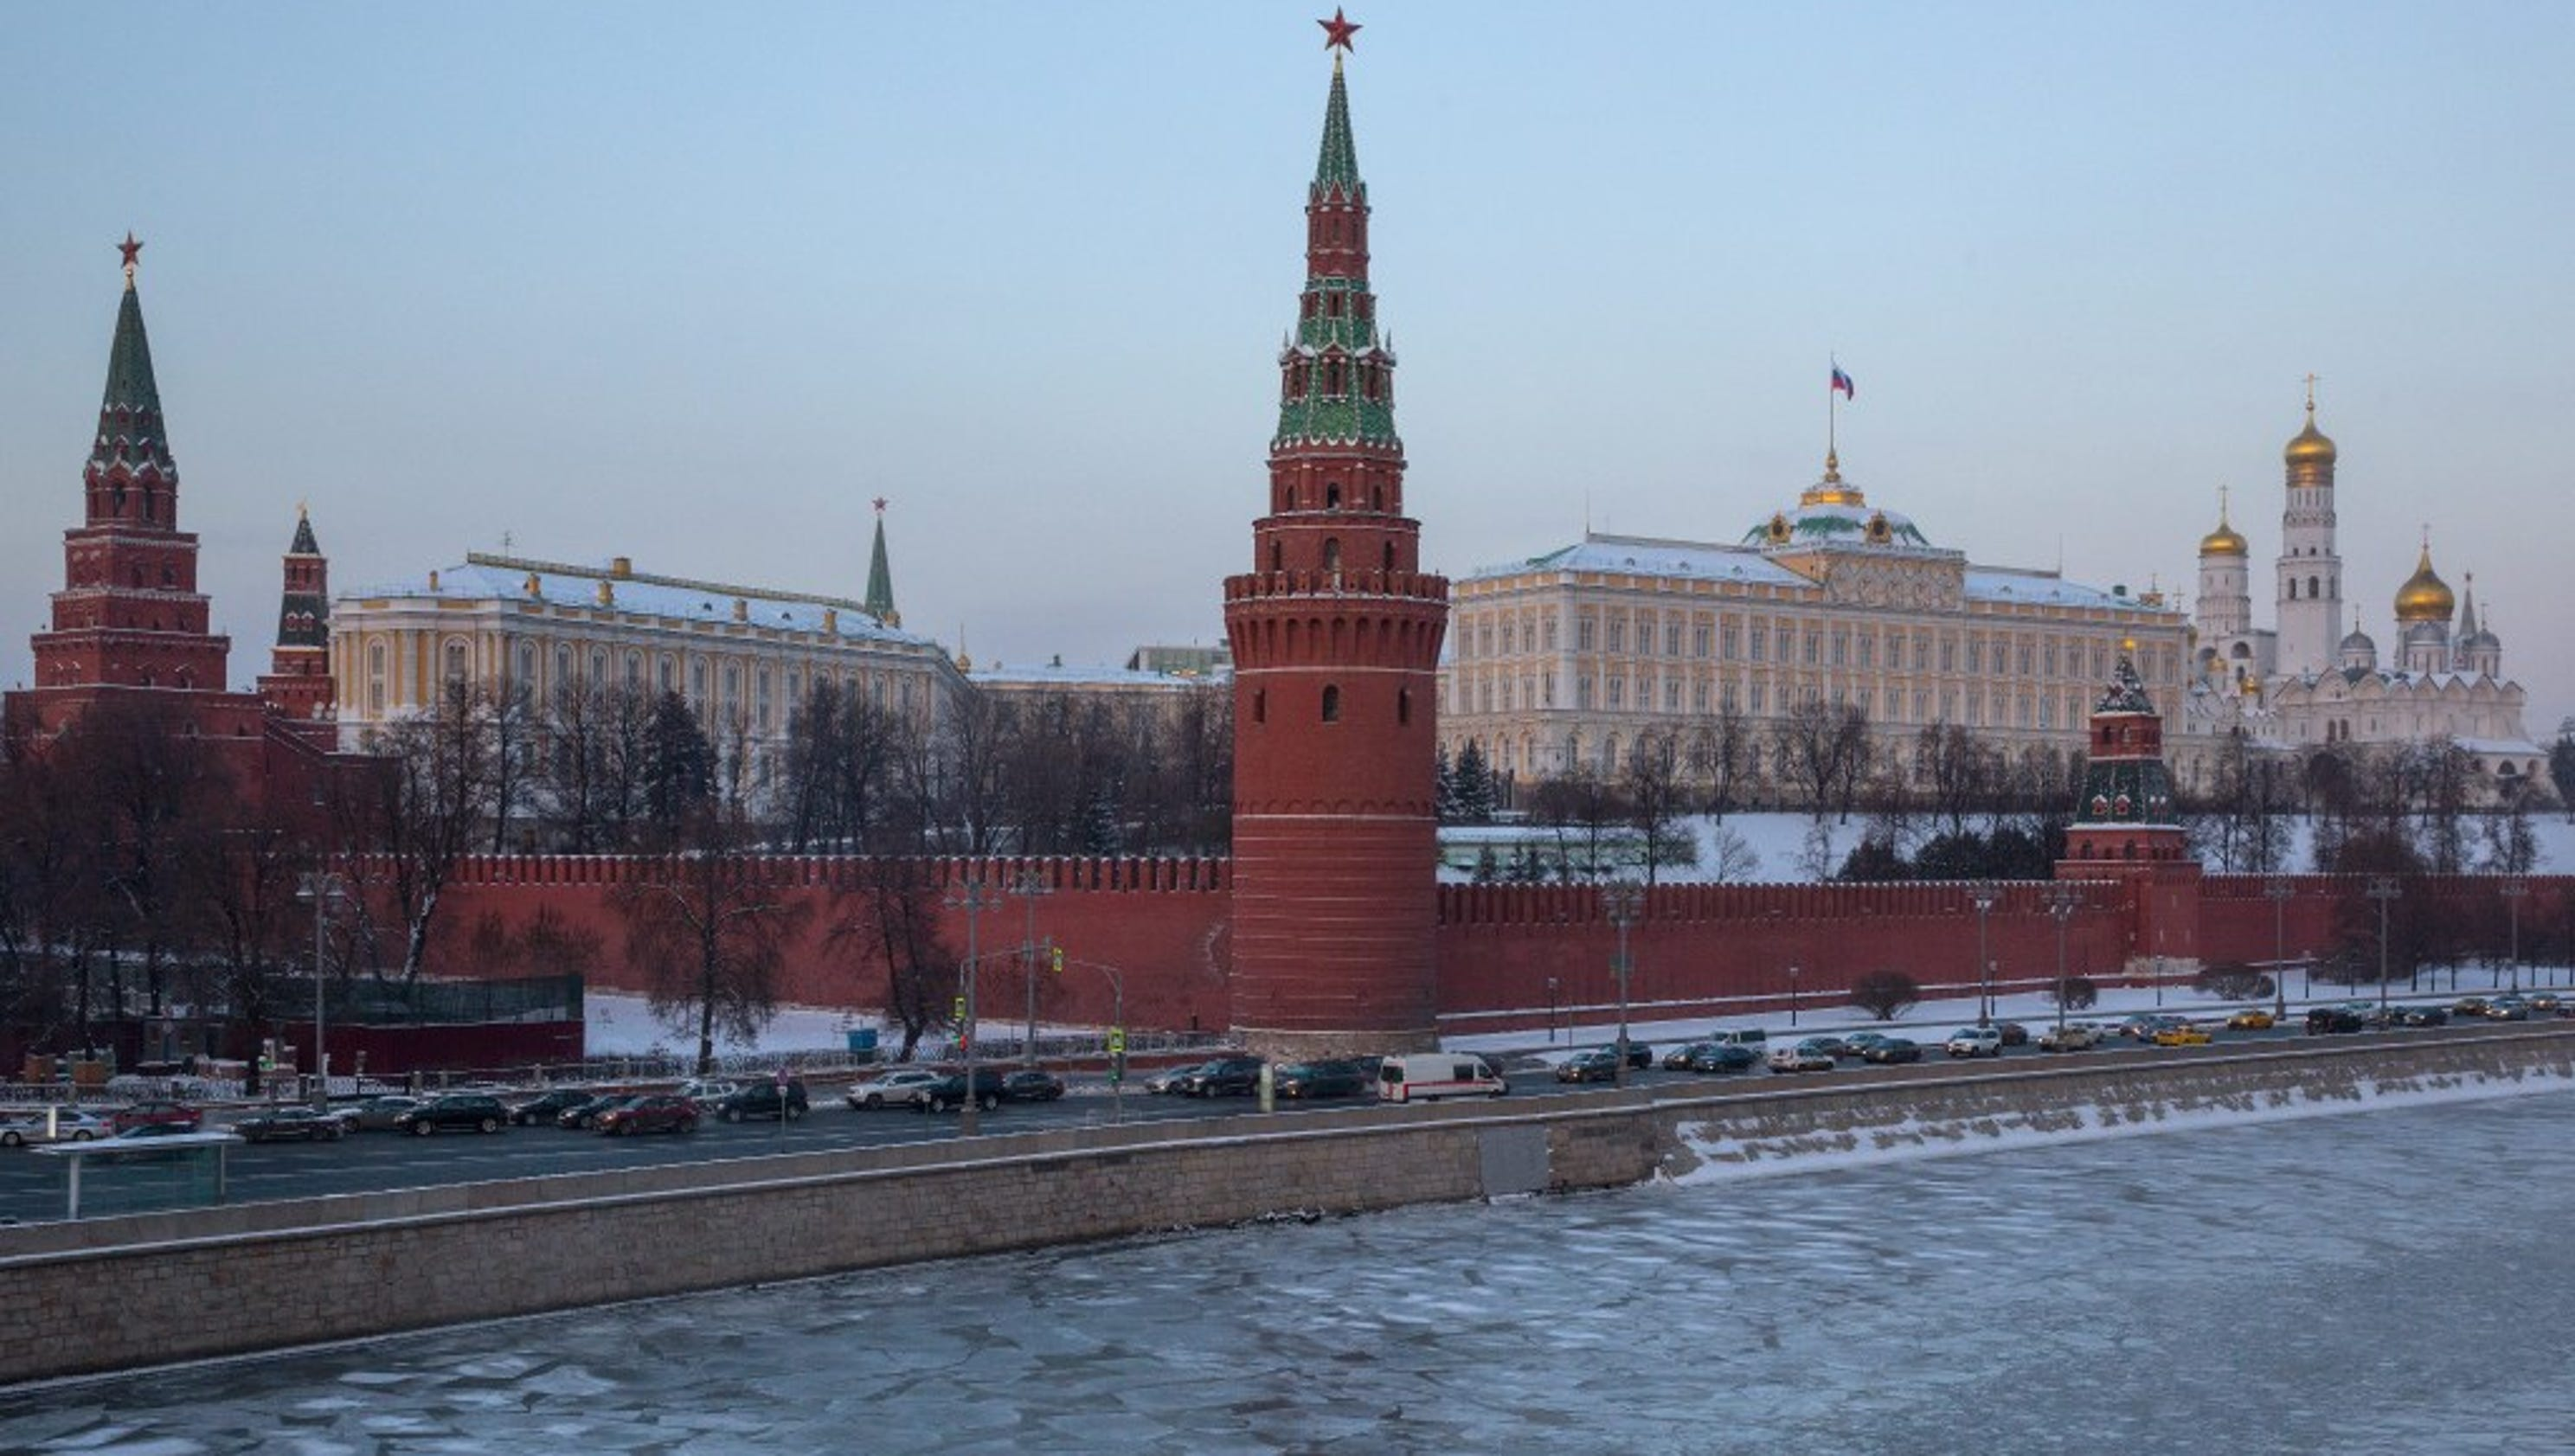 Russia Expels 23 British Diplomats Escalating Row Over ExSpy Poisoning